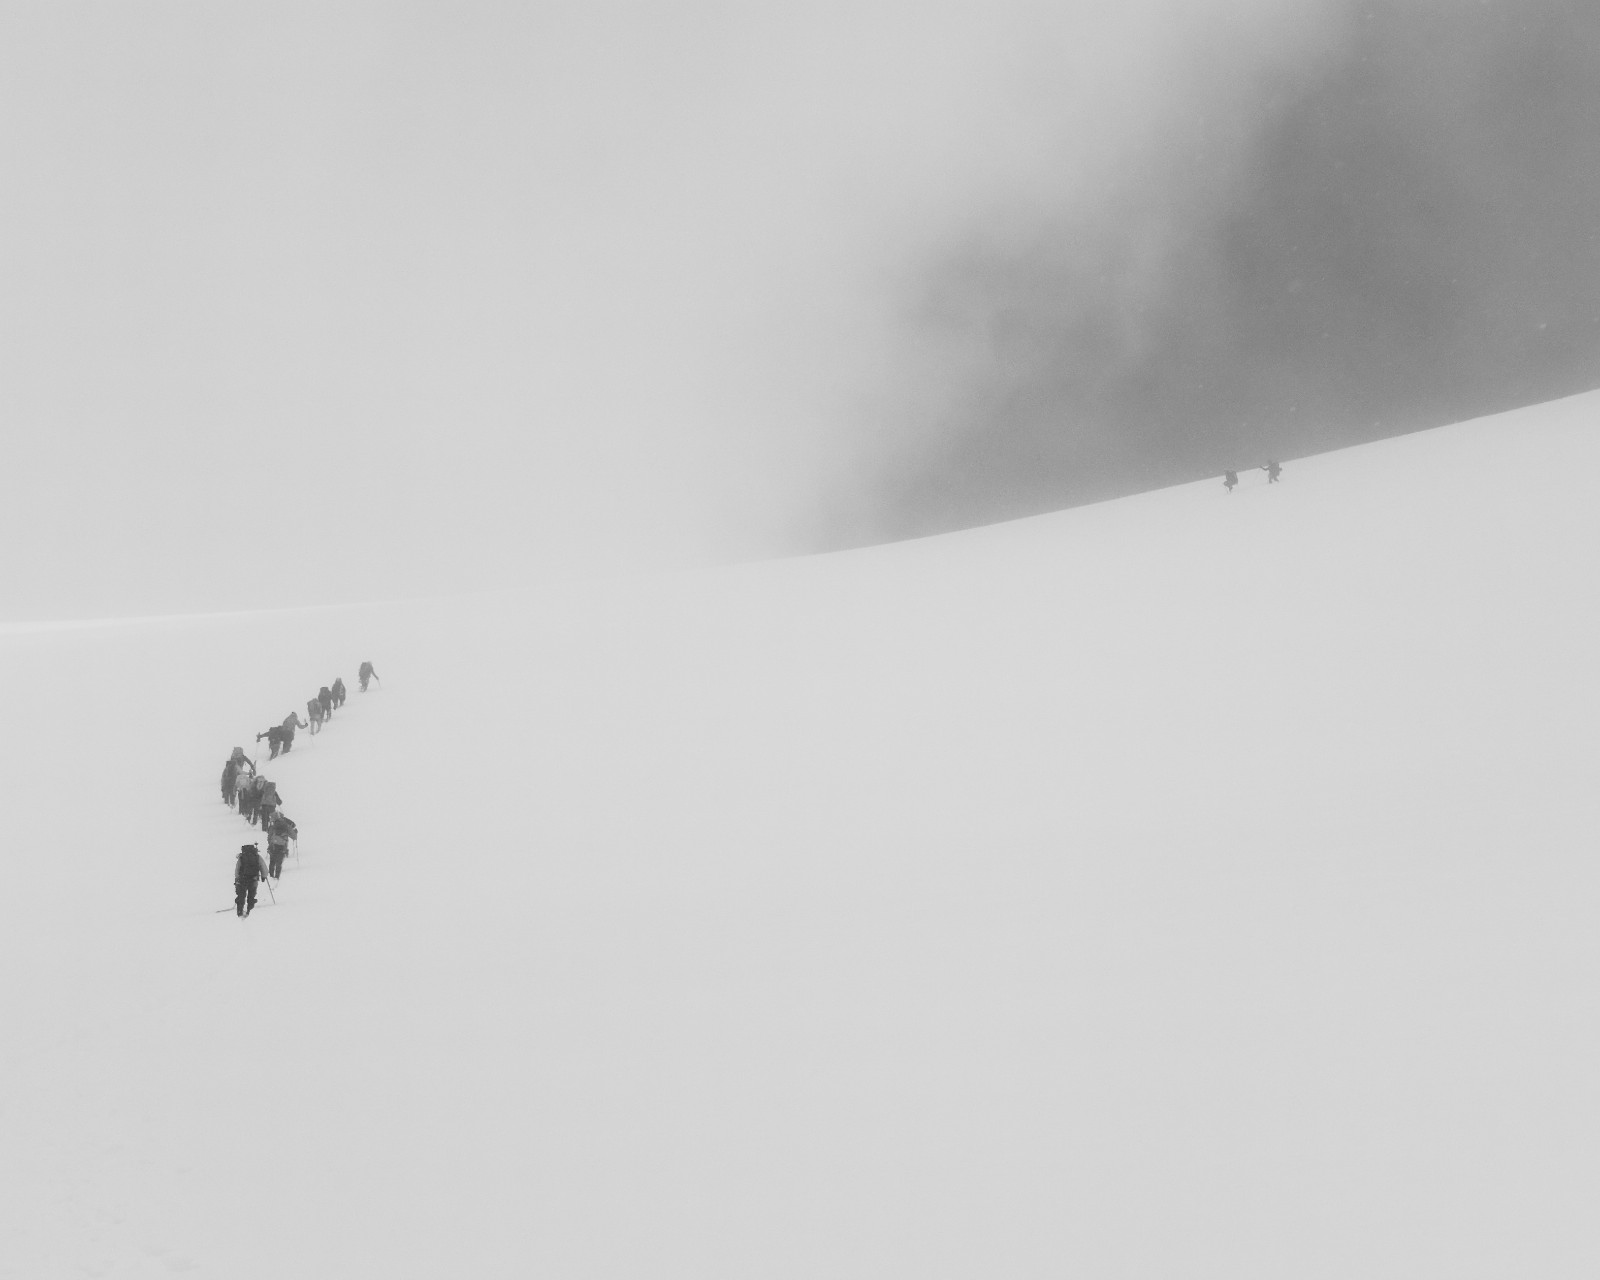 Exit White Out - Signalkuppe Summit